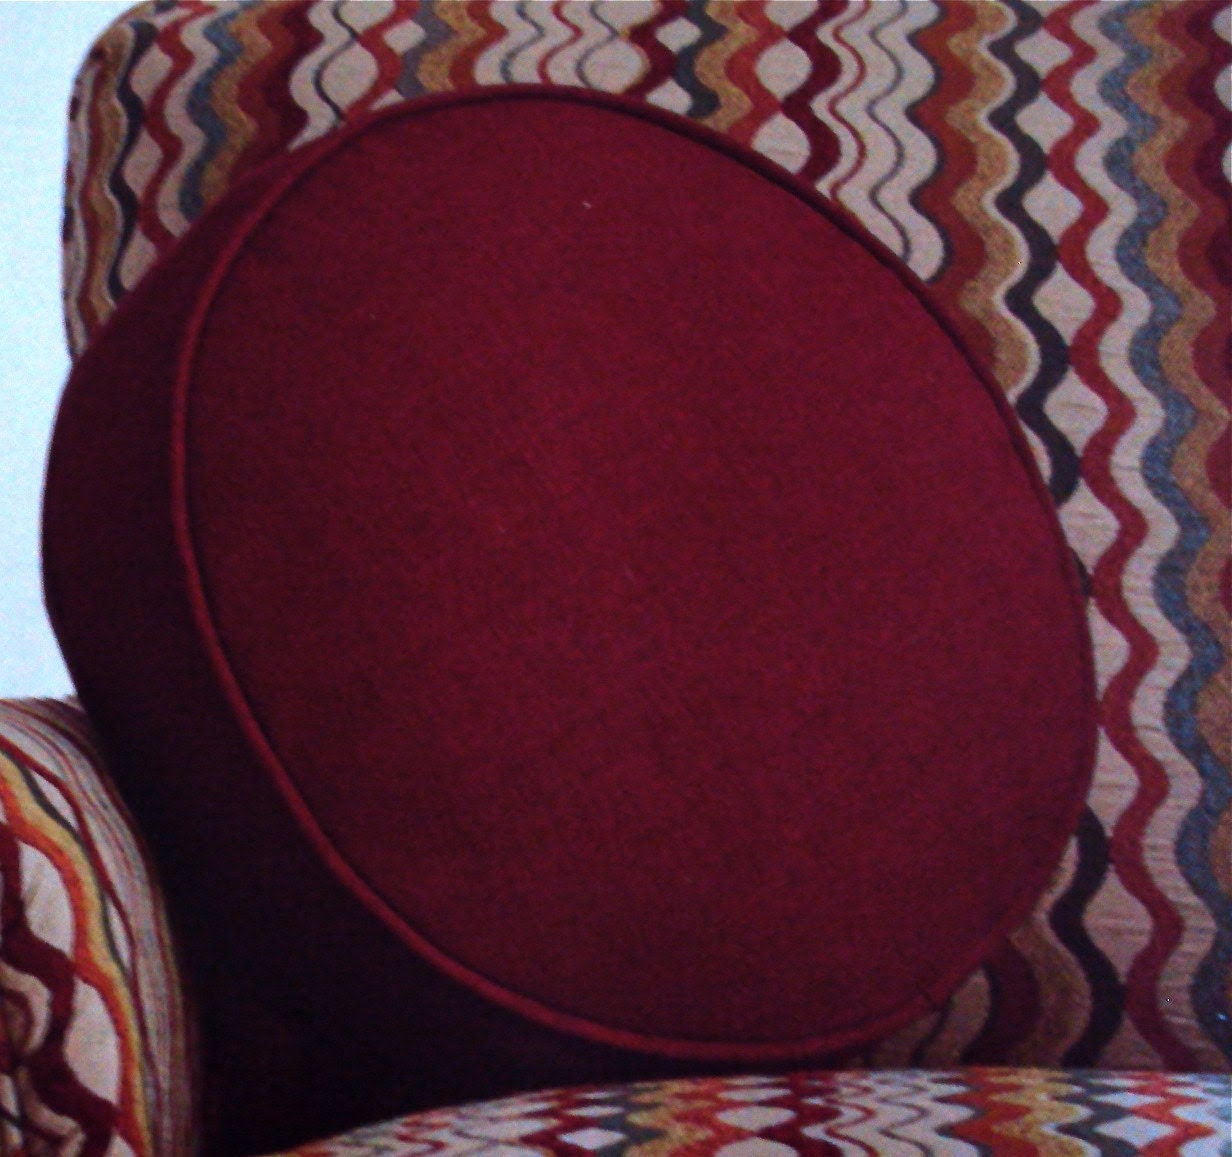 Round Pillow or Cushion/Floor Pillow In Deep Red Fabric by idari